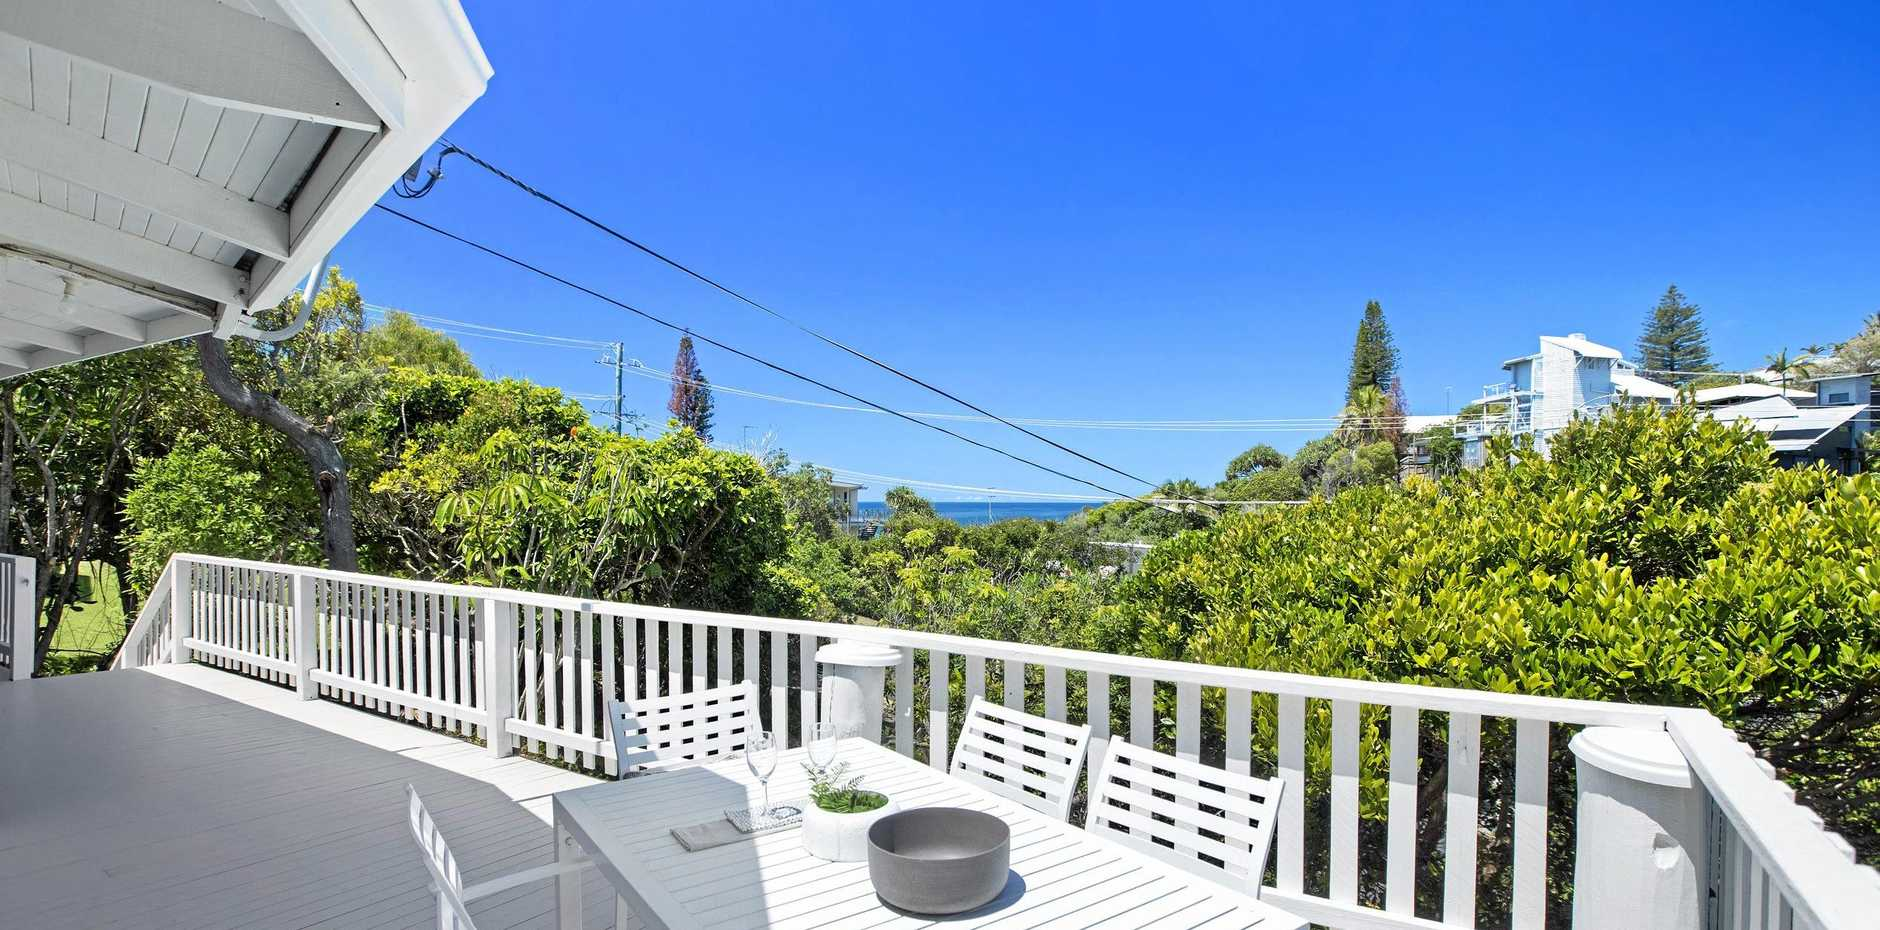 WHAT A VIEW: The view from 47 Seaview Terrace, Sunshine Beach.